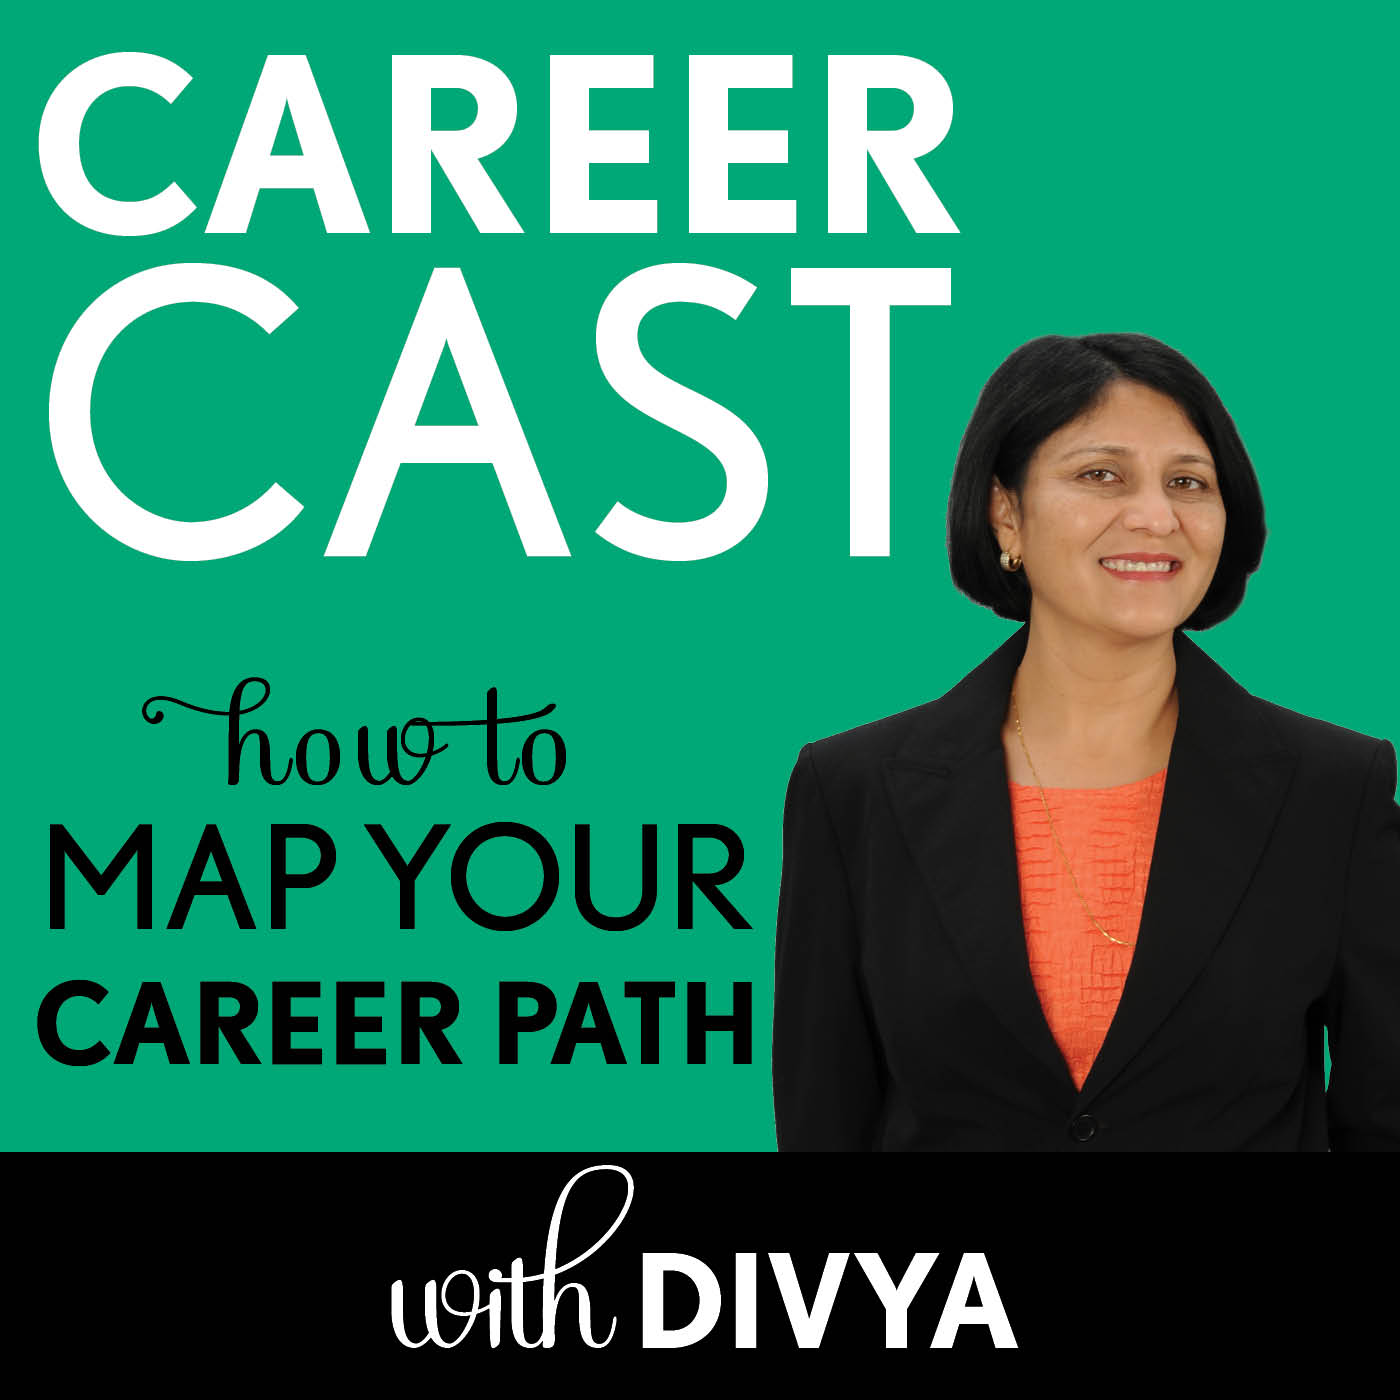 Career Cast: How to Map Your Career Path